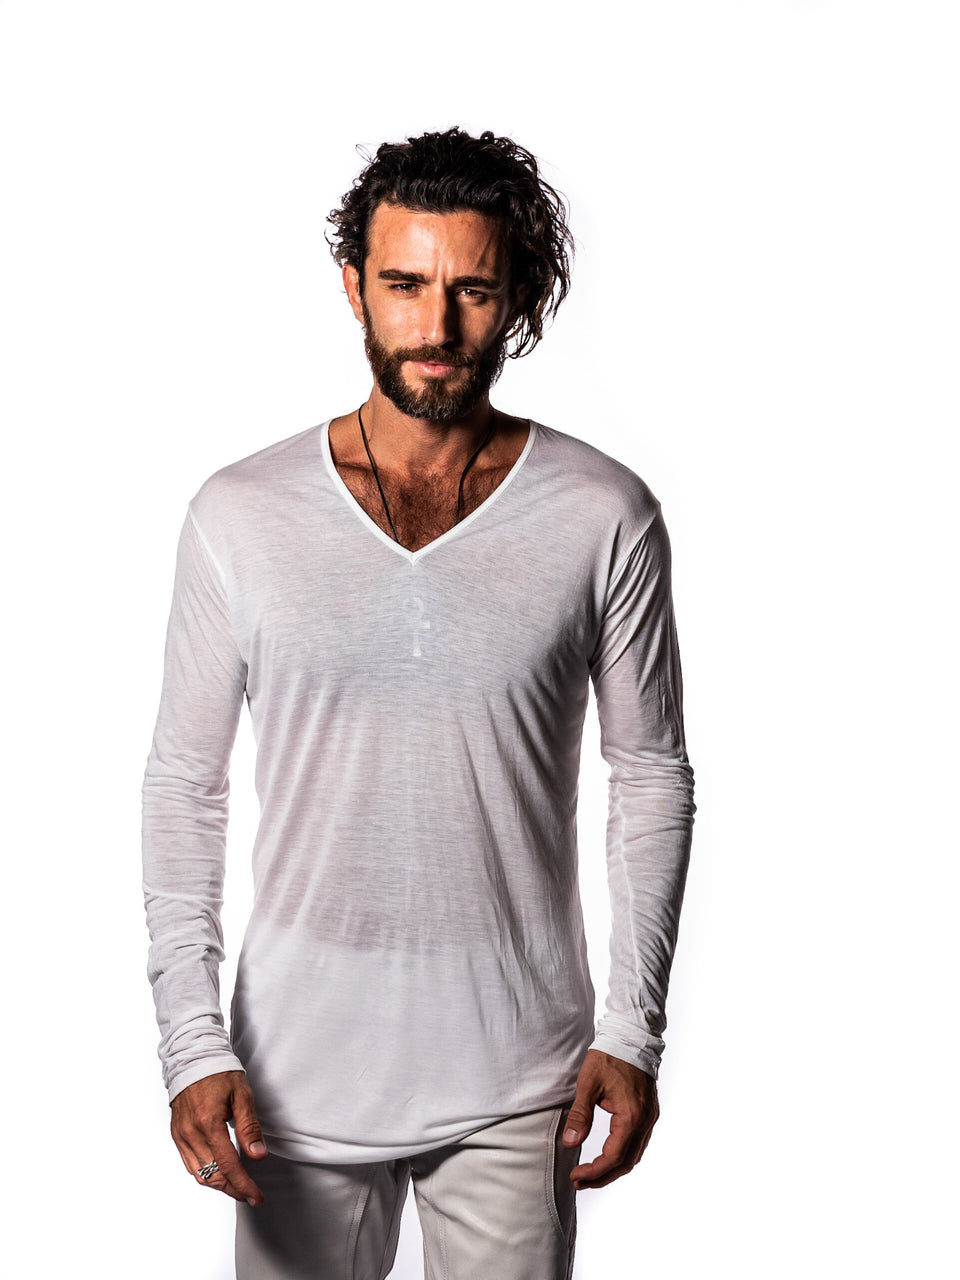 Long Sleeve V-Neck Shirt - Illuminated White